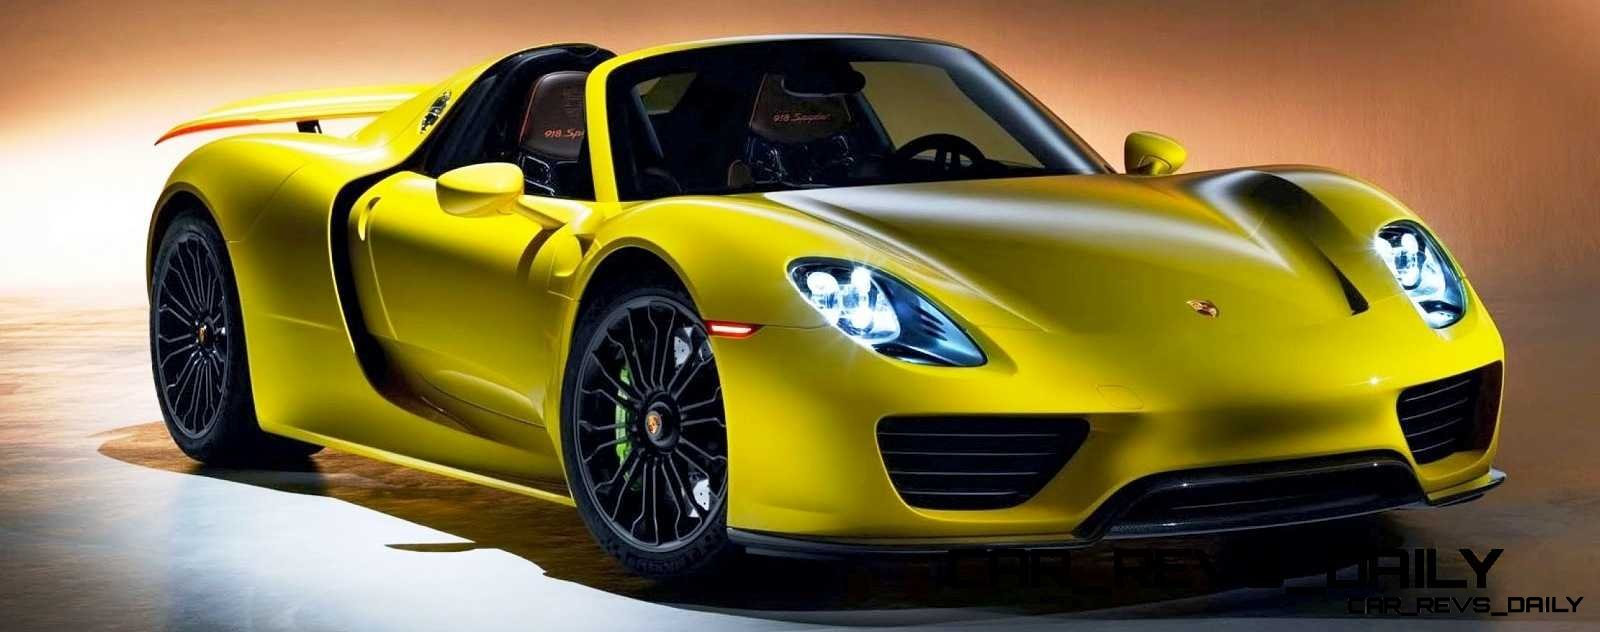 hd video 918 spyder in hot track session latest yellow photos. Black Bedroom Furniture Sets. Home Design Ideas